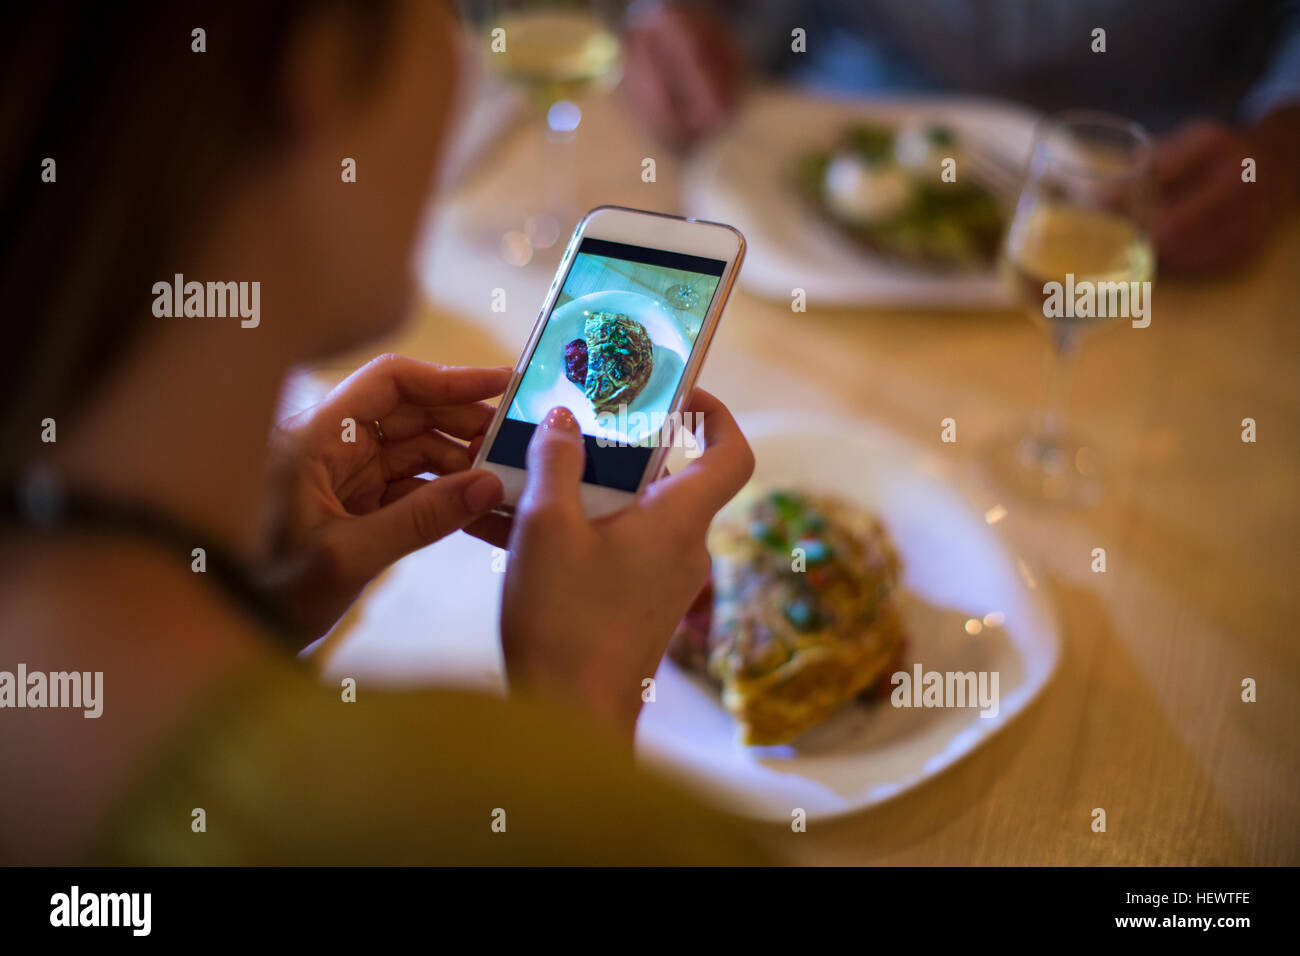 Woman taking photograph of her food on table - Stock Image